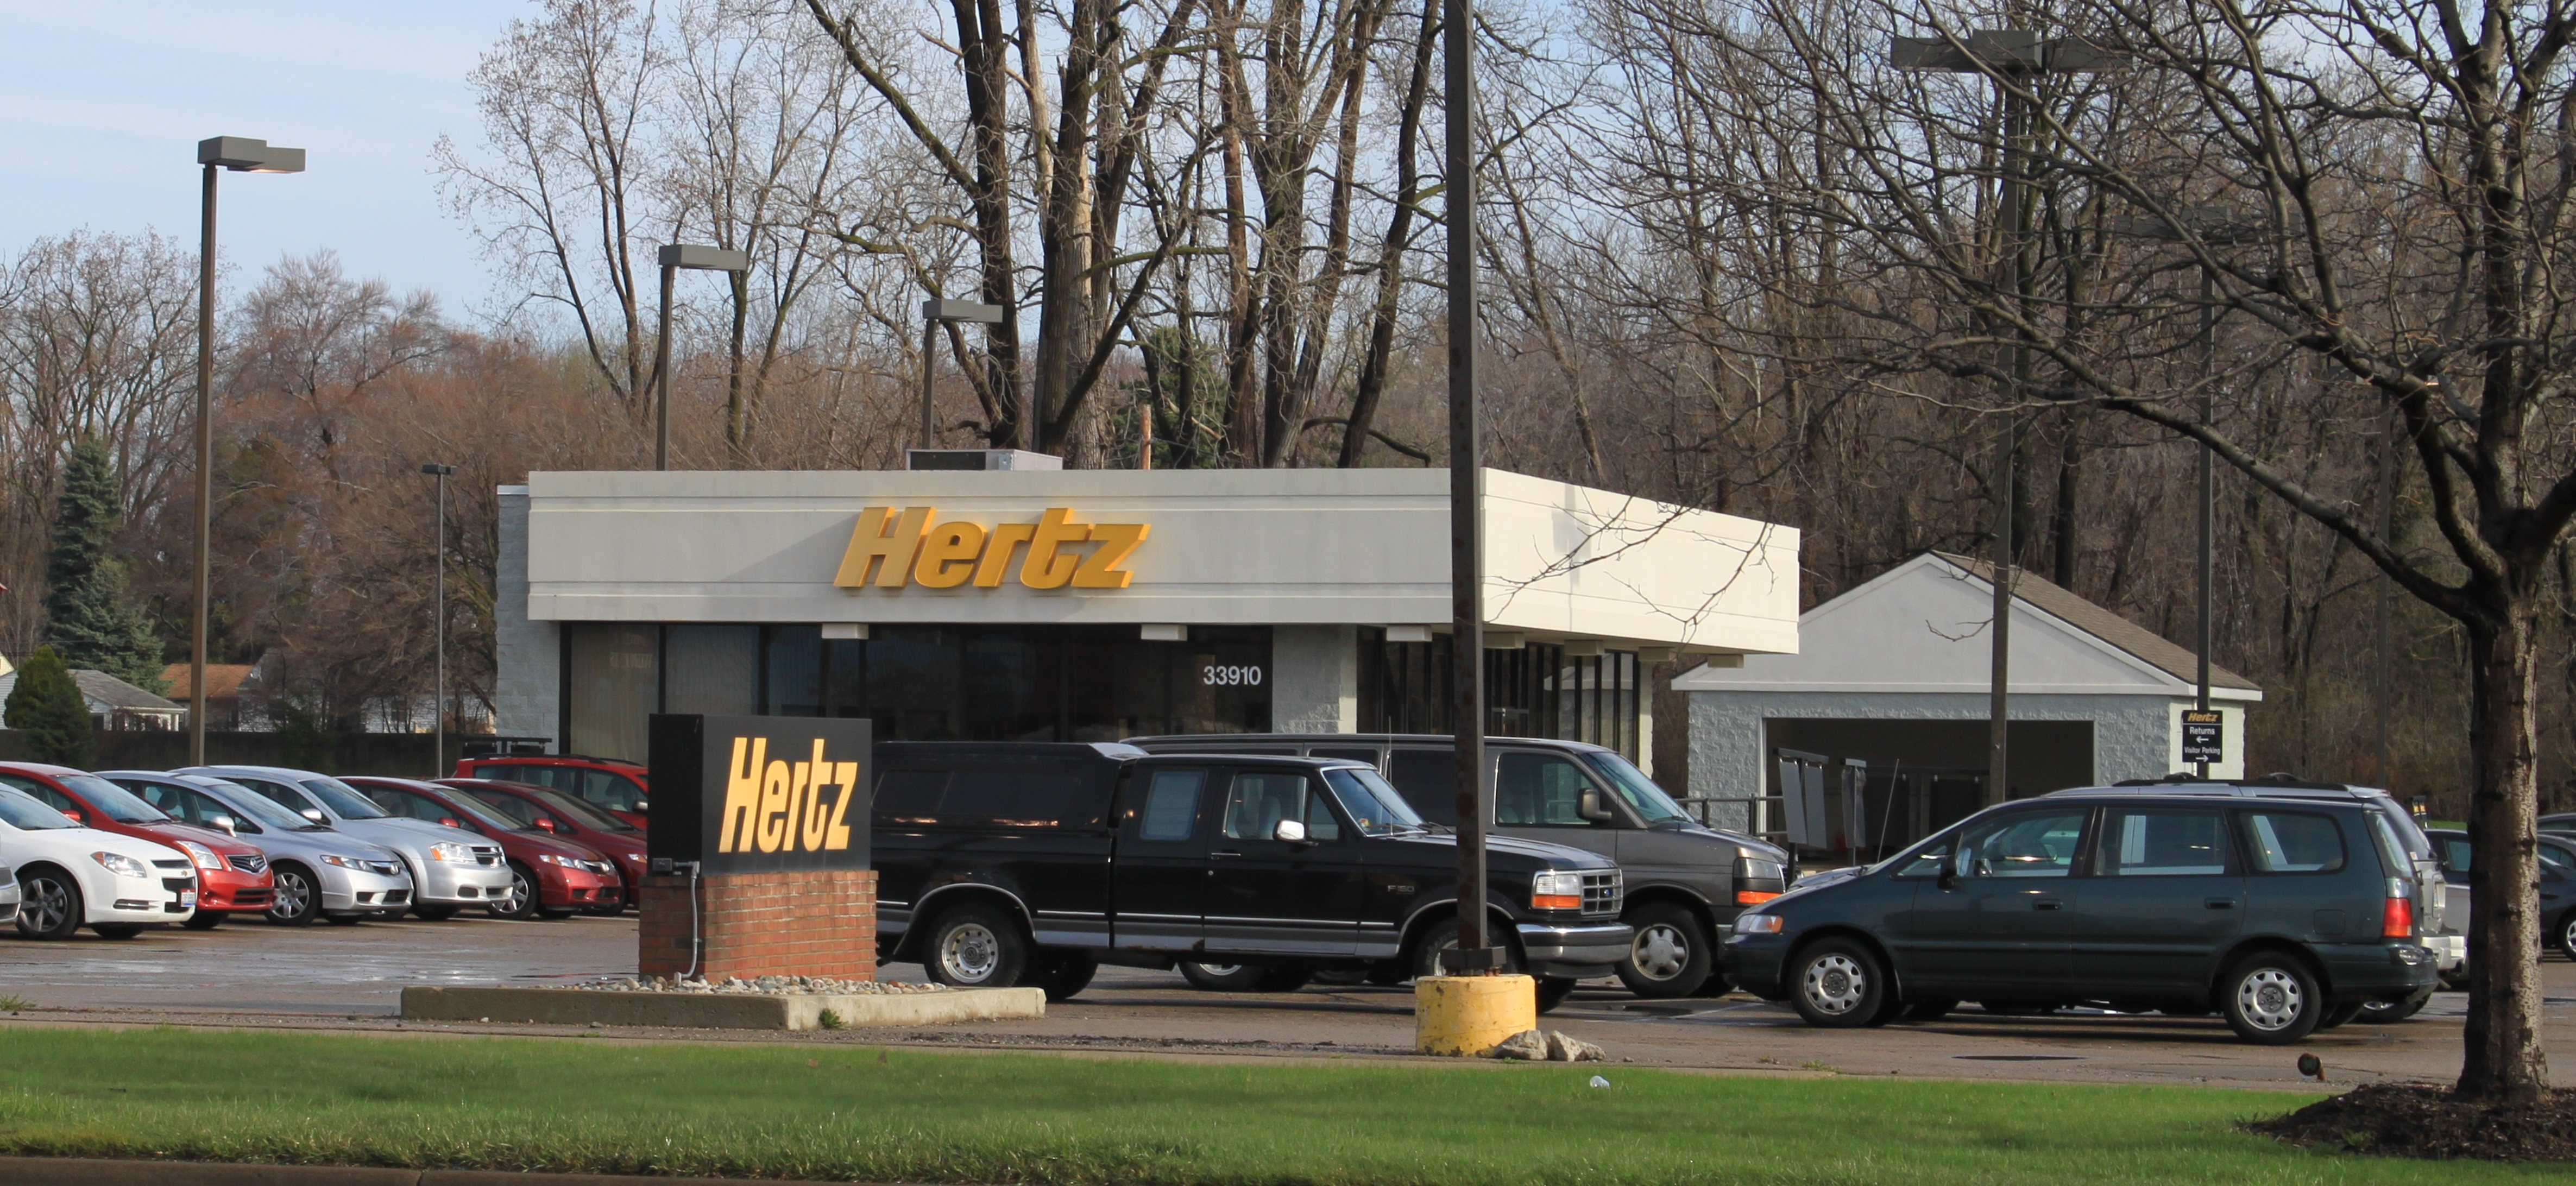 Hertz Car Rental In Boone Nc